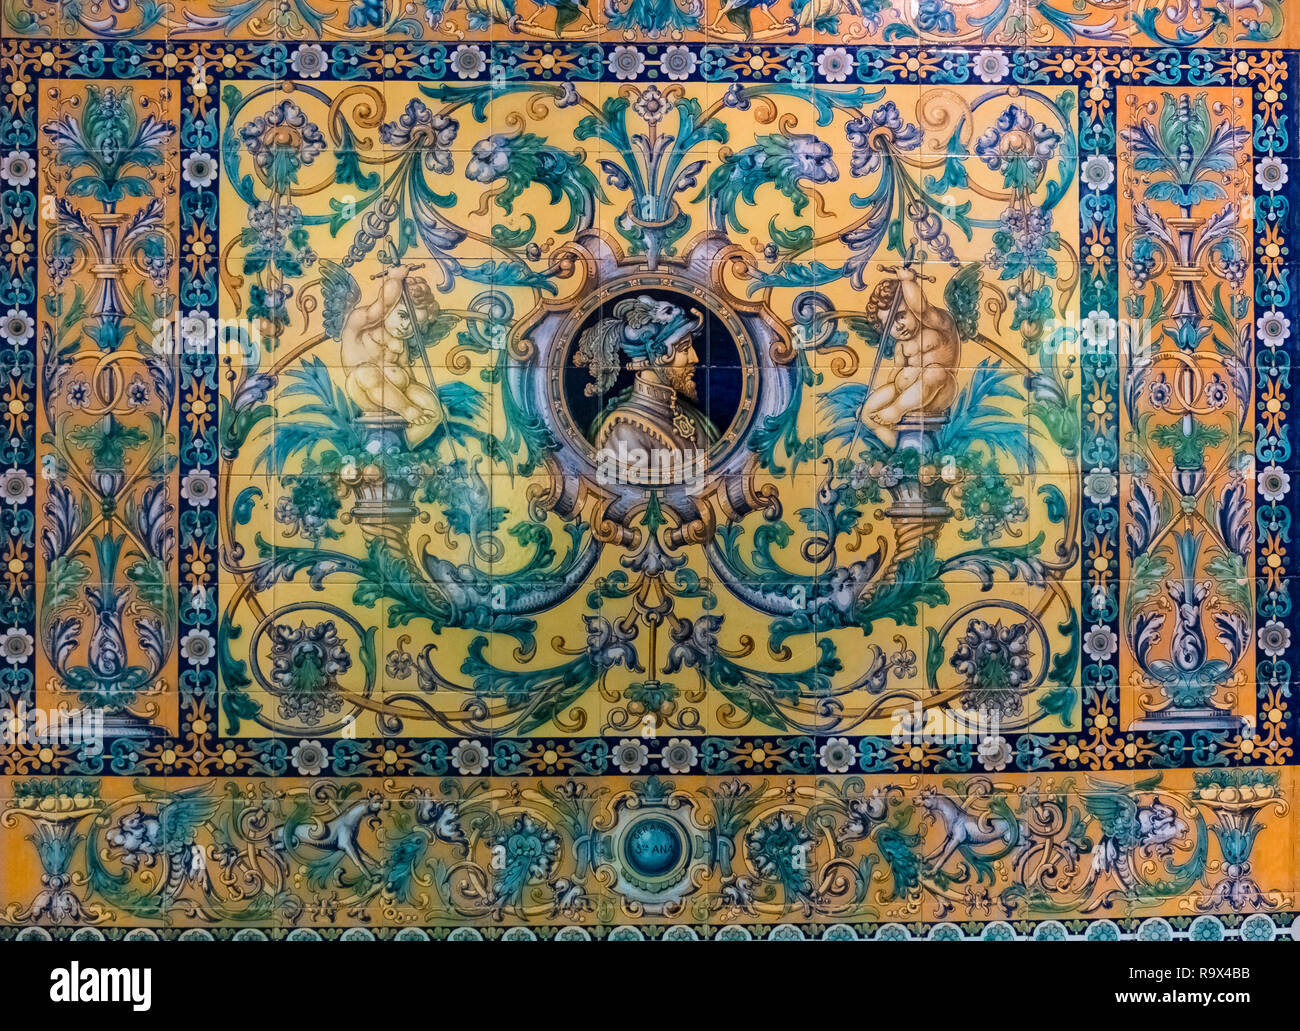 Close up view of ceramic decorative wall tiles, typically seen in Seville, Andalucia, Spain Stock Photo